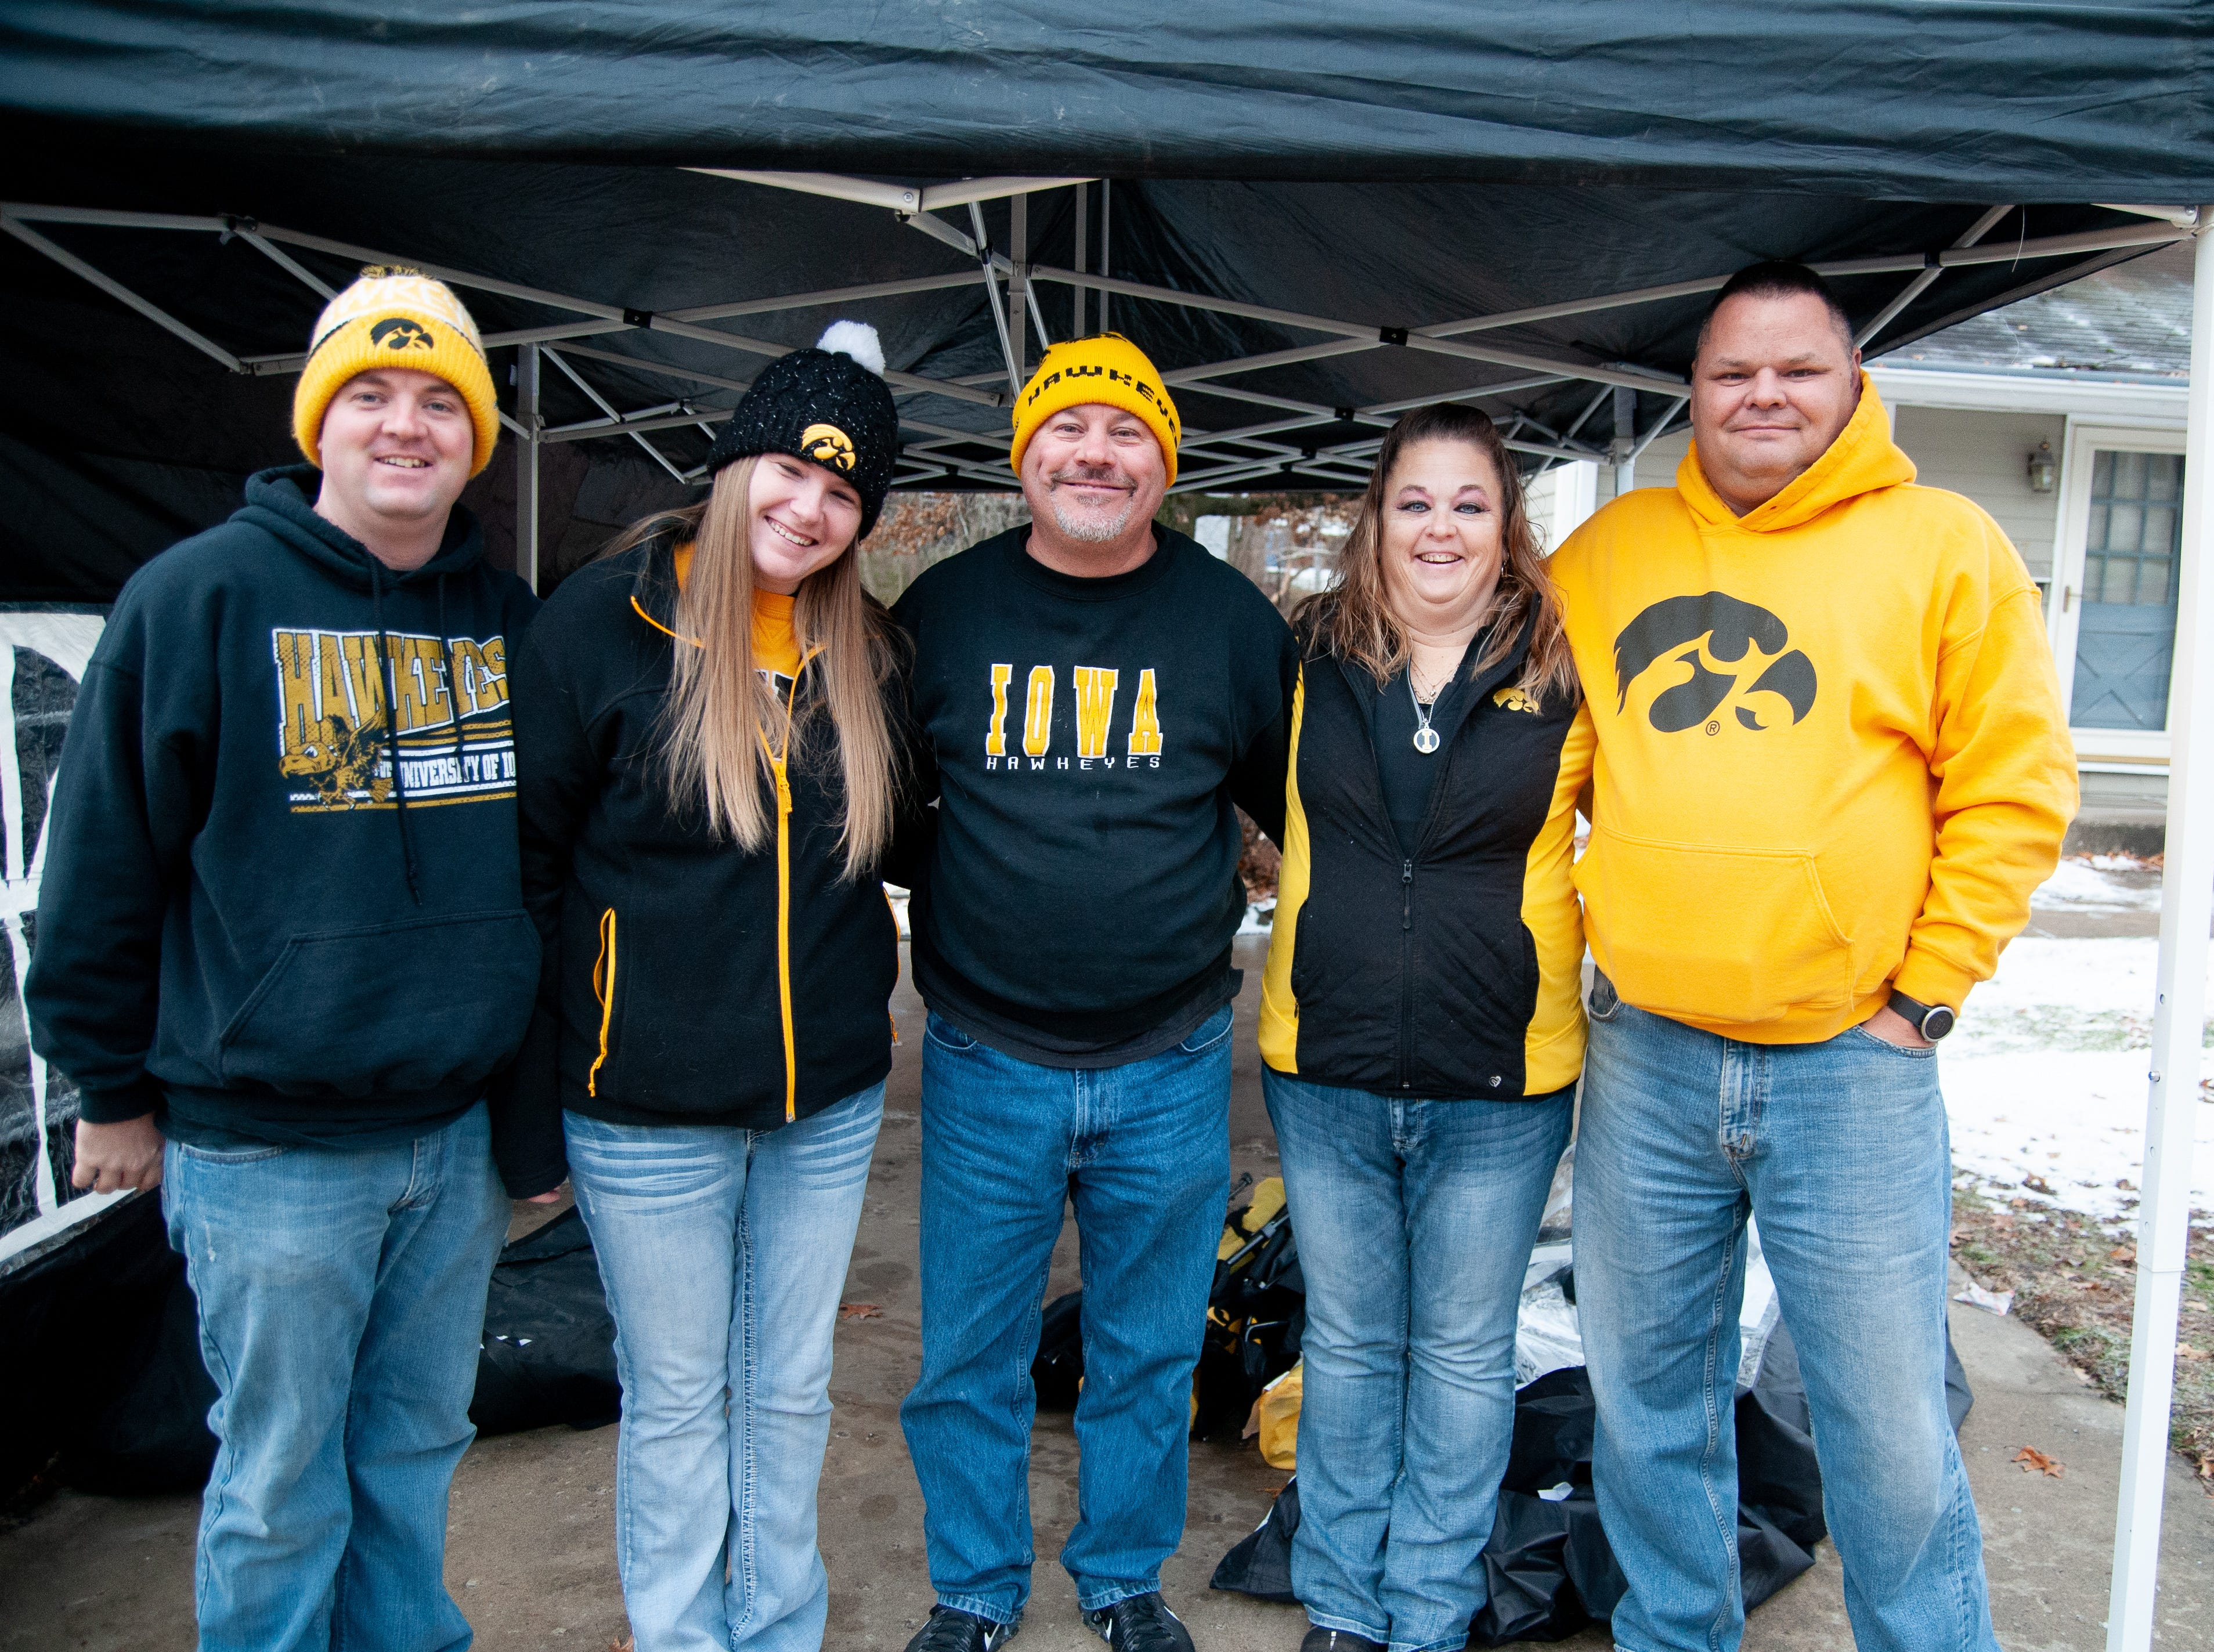 The Cathedral Tailgate, of Wapello, Friday, Nov. 23, 2018, while tailgating before the Iowa game against Nebraska in Iowa City.